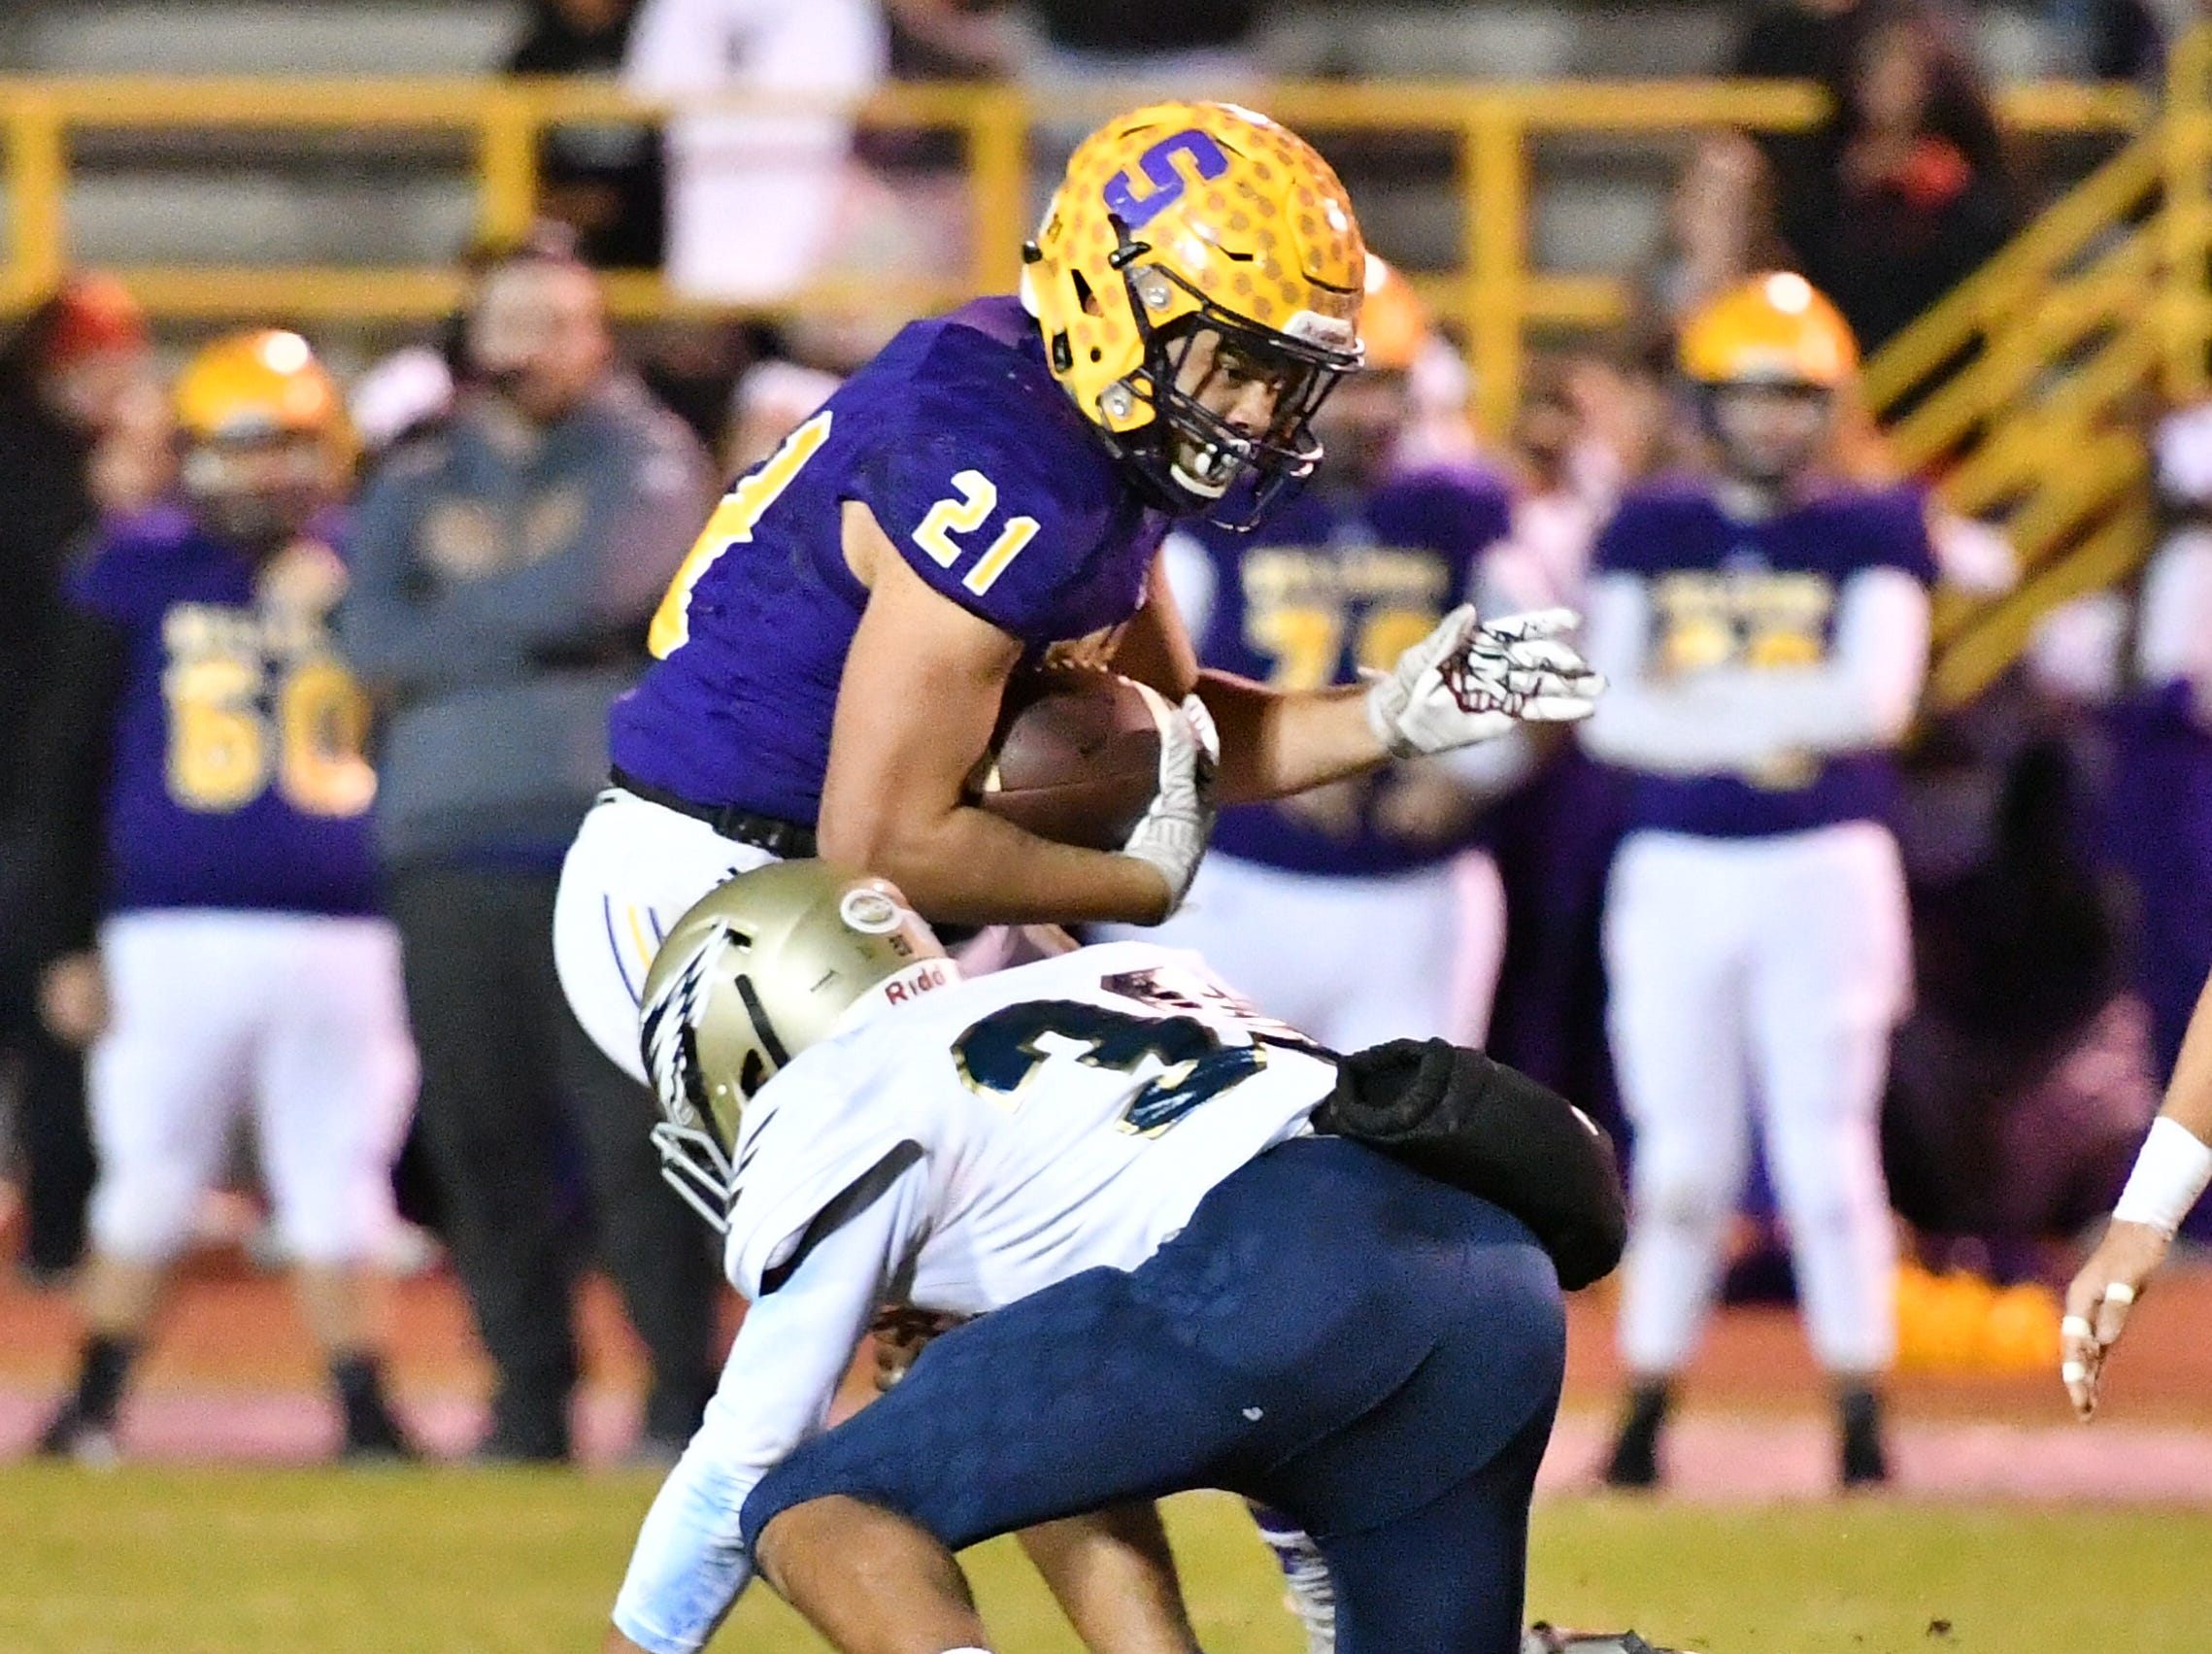 Smyrna's Blake Watkins is wrapped up by Independence's Jaxson Campbell Friday.